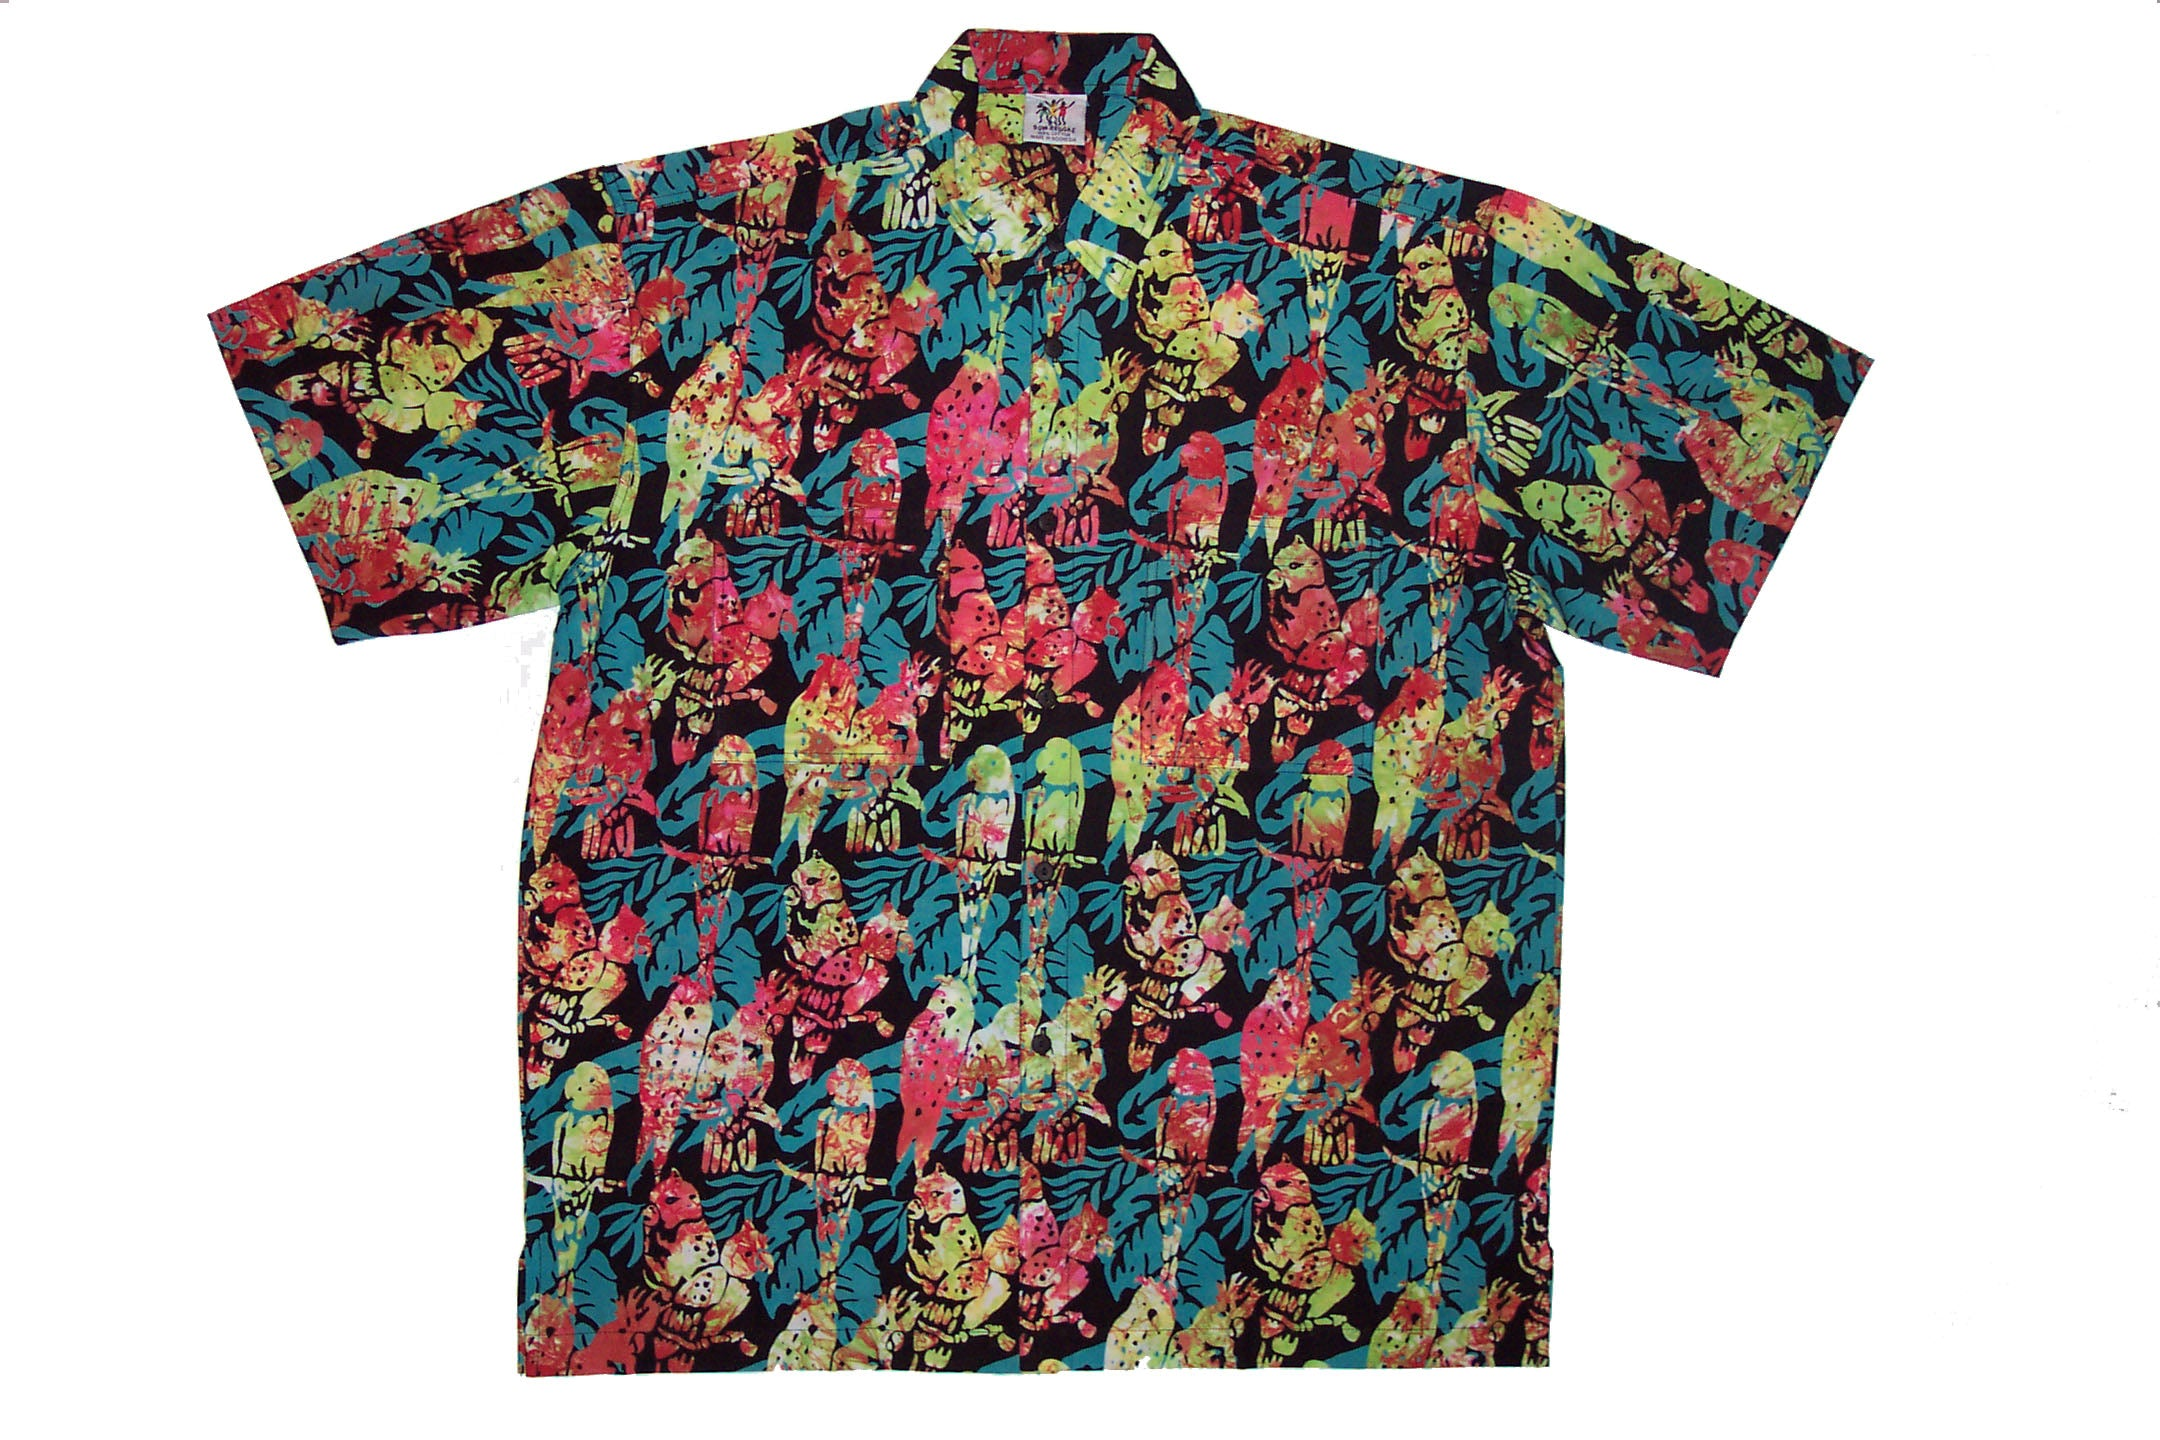 Cabana Shirt - Parrot Fashion